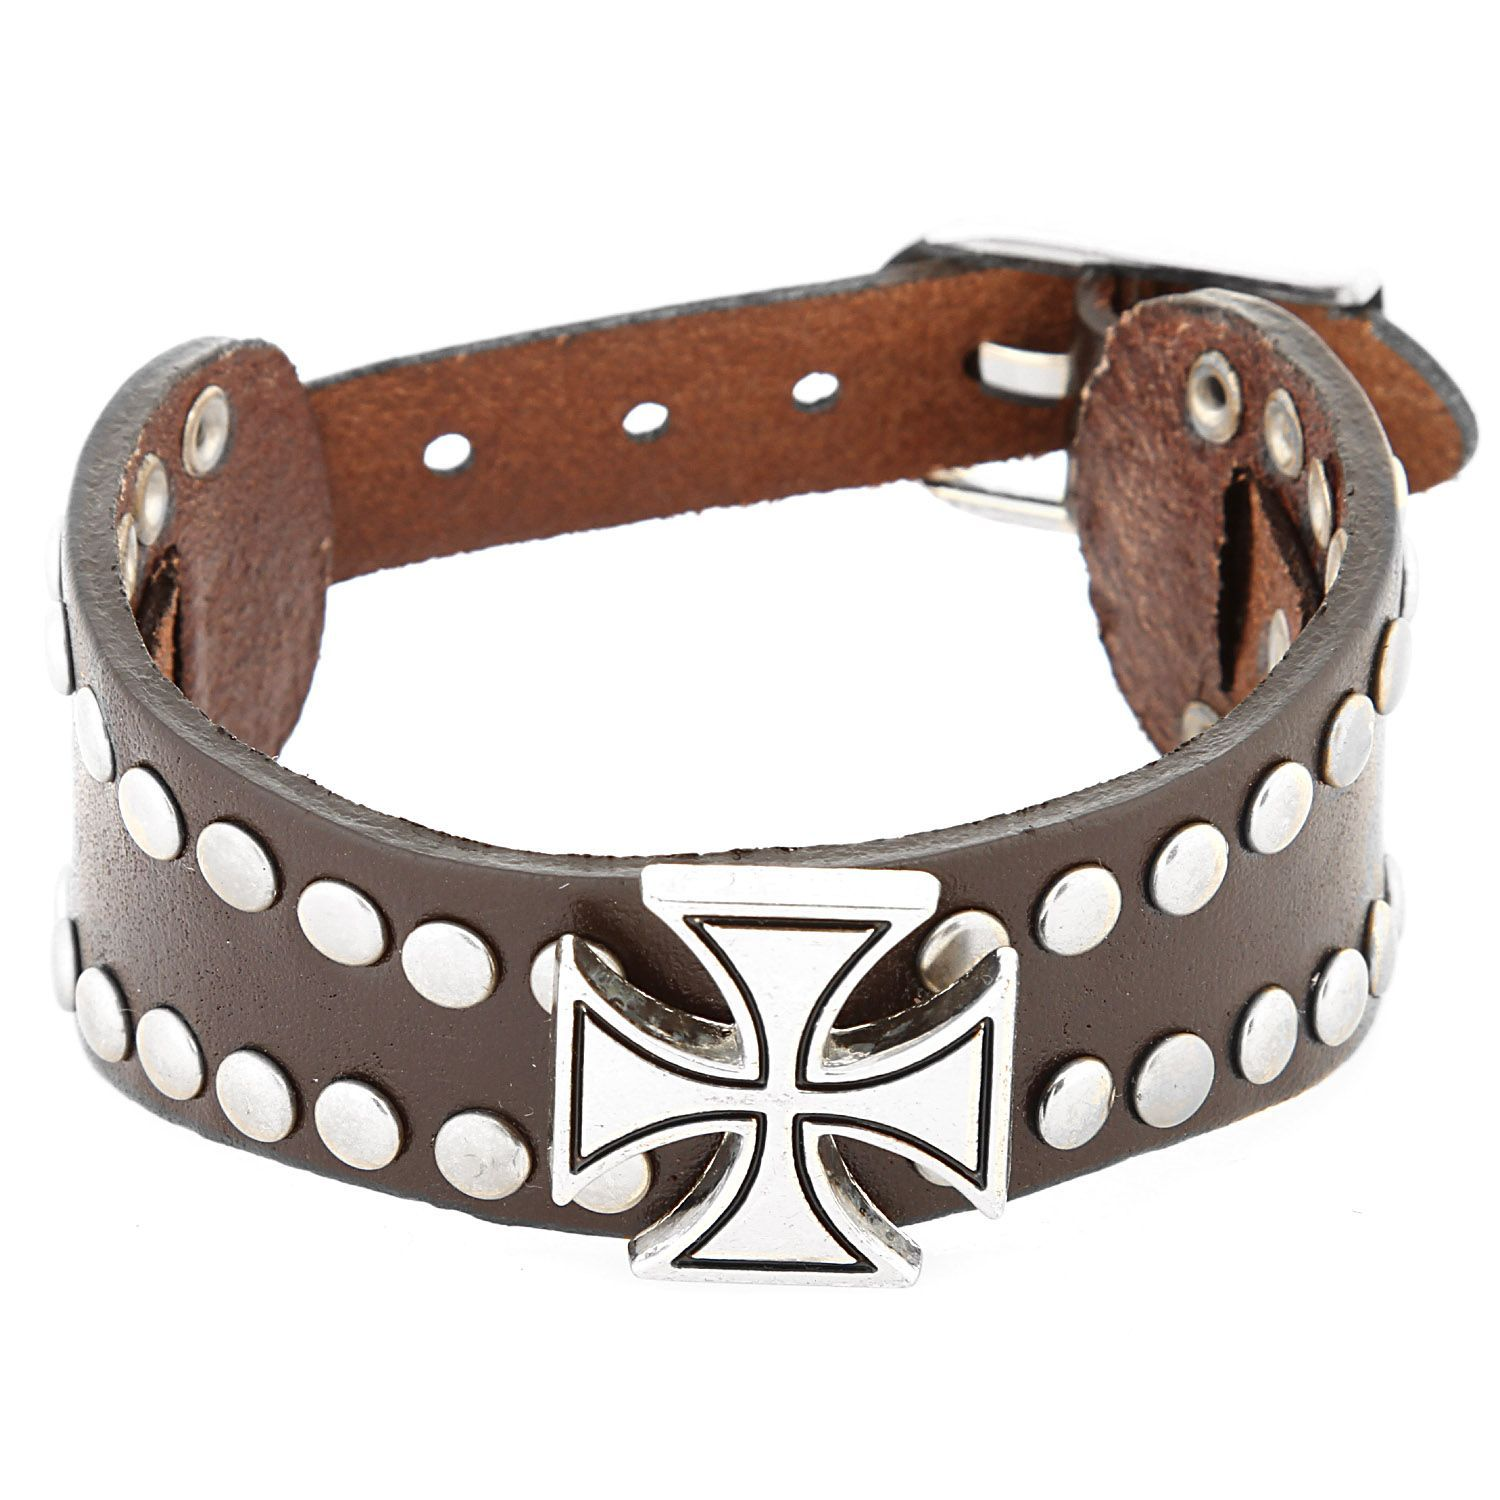 West Coast Jewelry Stainless Steel and Leather Men's Celtic Cross and Stud Bracelet (B